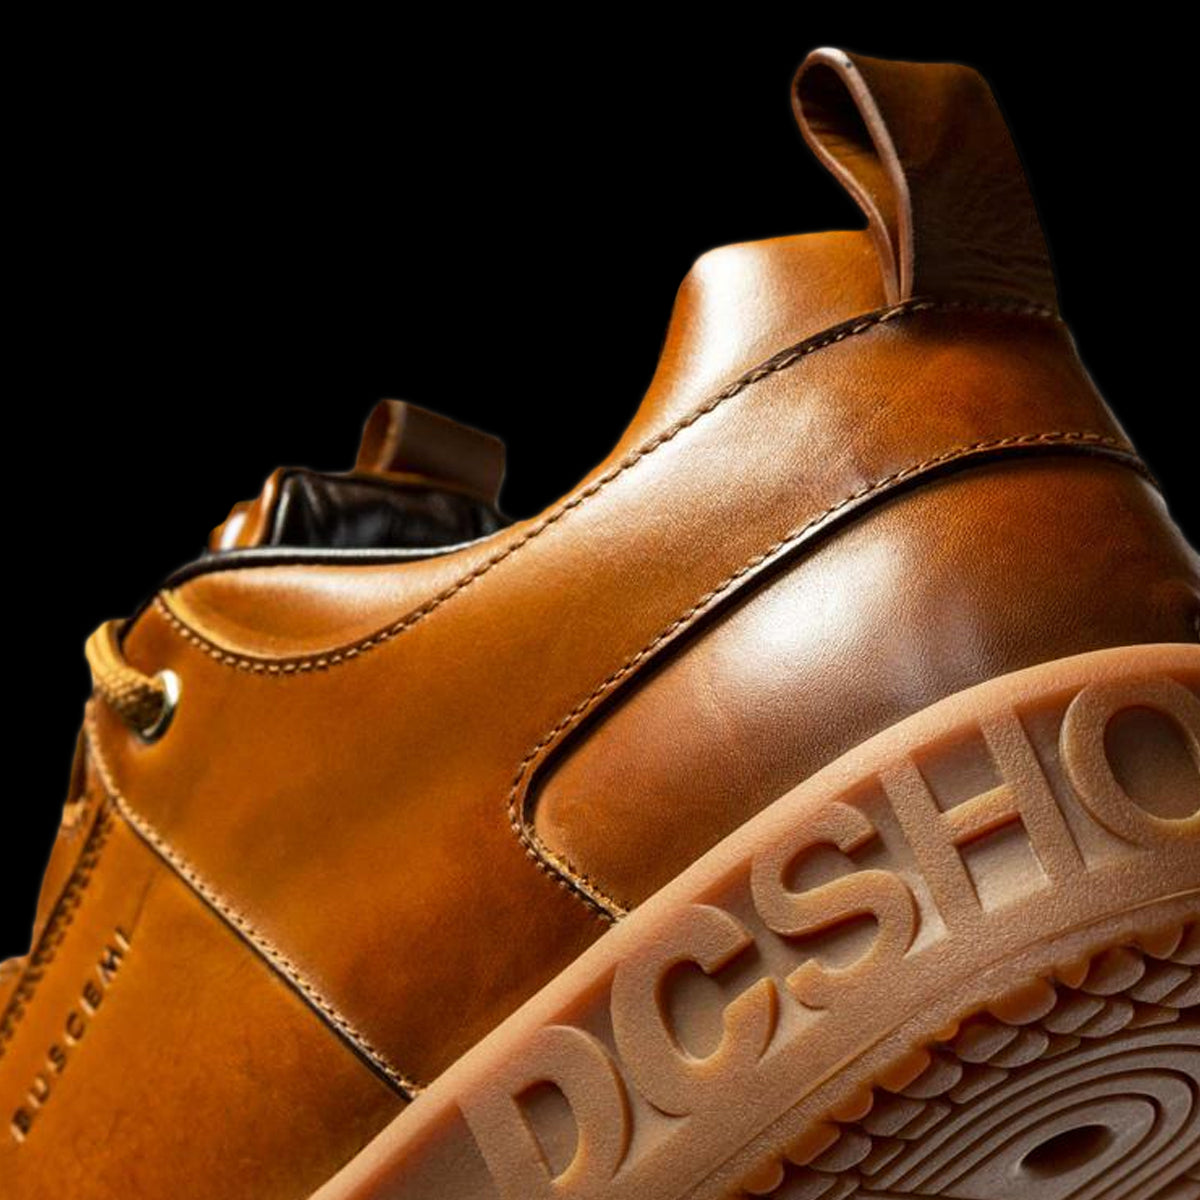 DC Shoes x Buscemi | Skateboarding Footwear Collab Collection